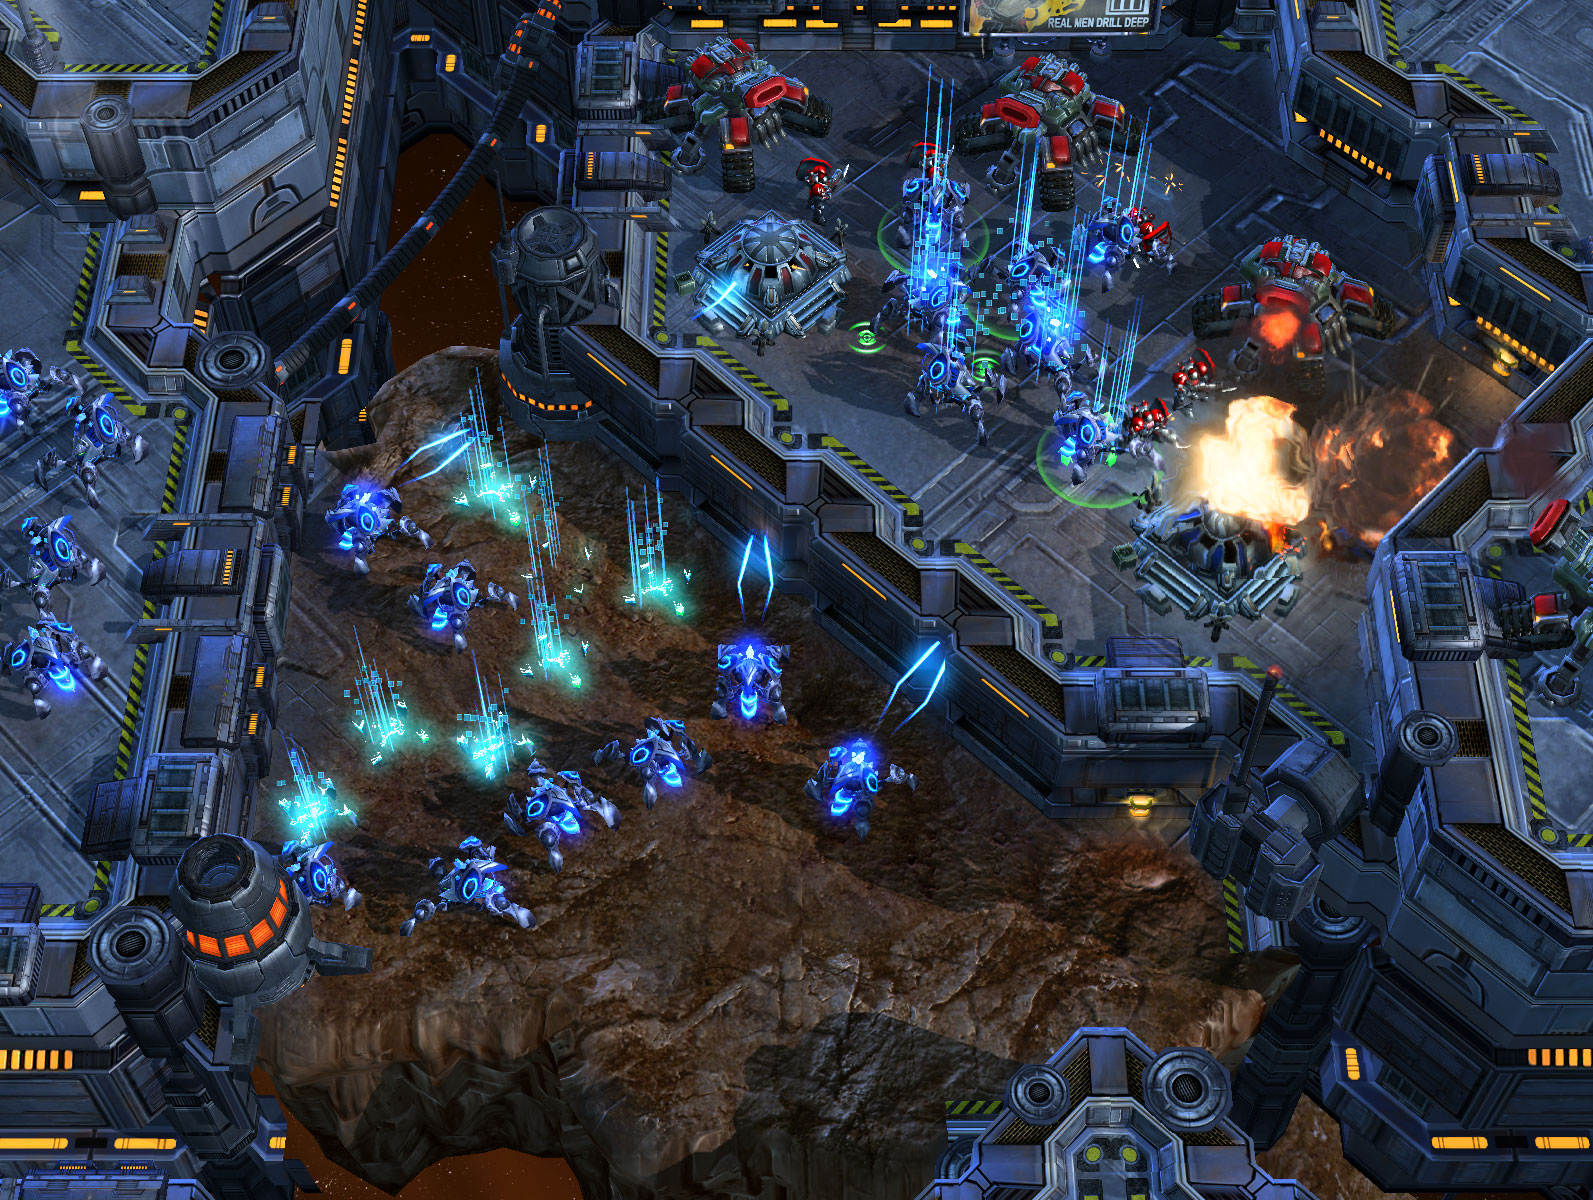 Video / Trailer: Starcraft II Cinematic Trailer And